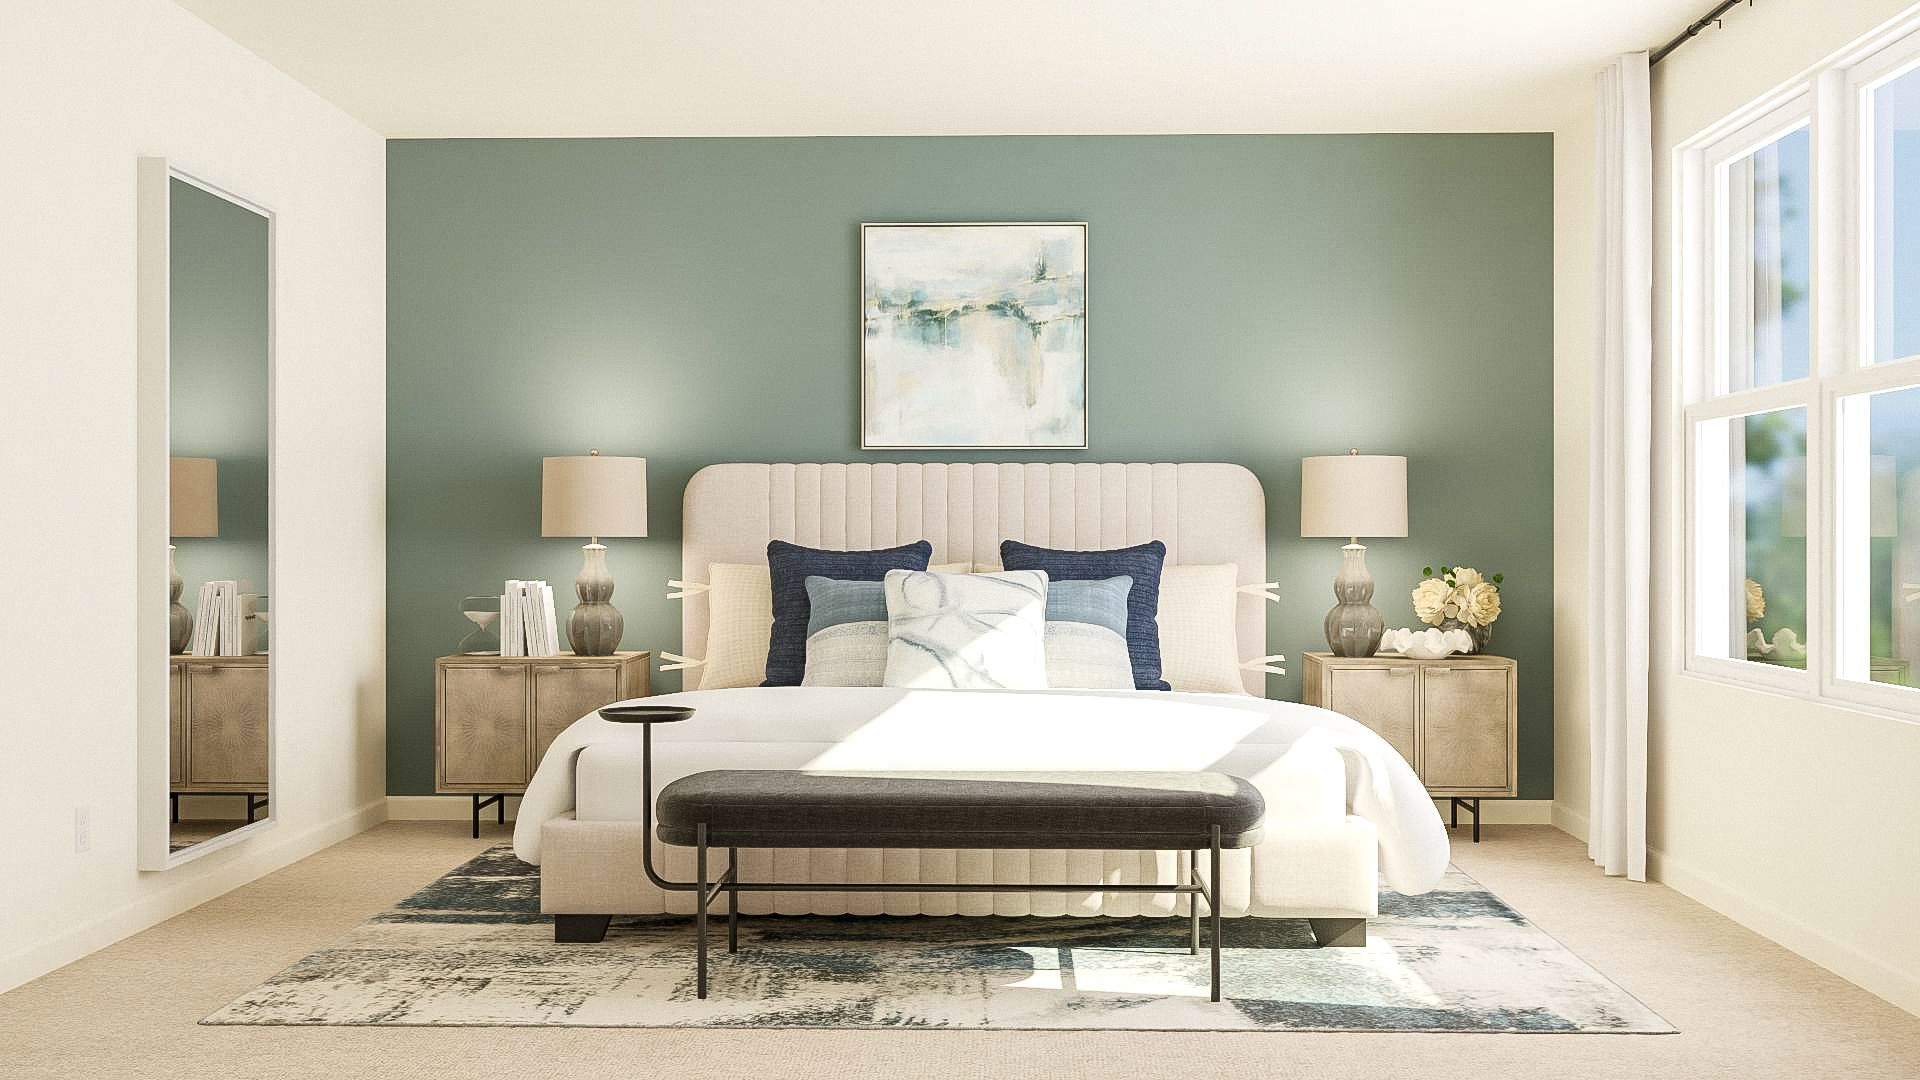 Bedroom featured in the Roosevelt By LGI Homes in Greeley, CO